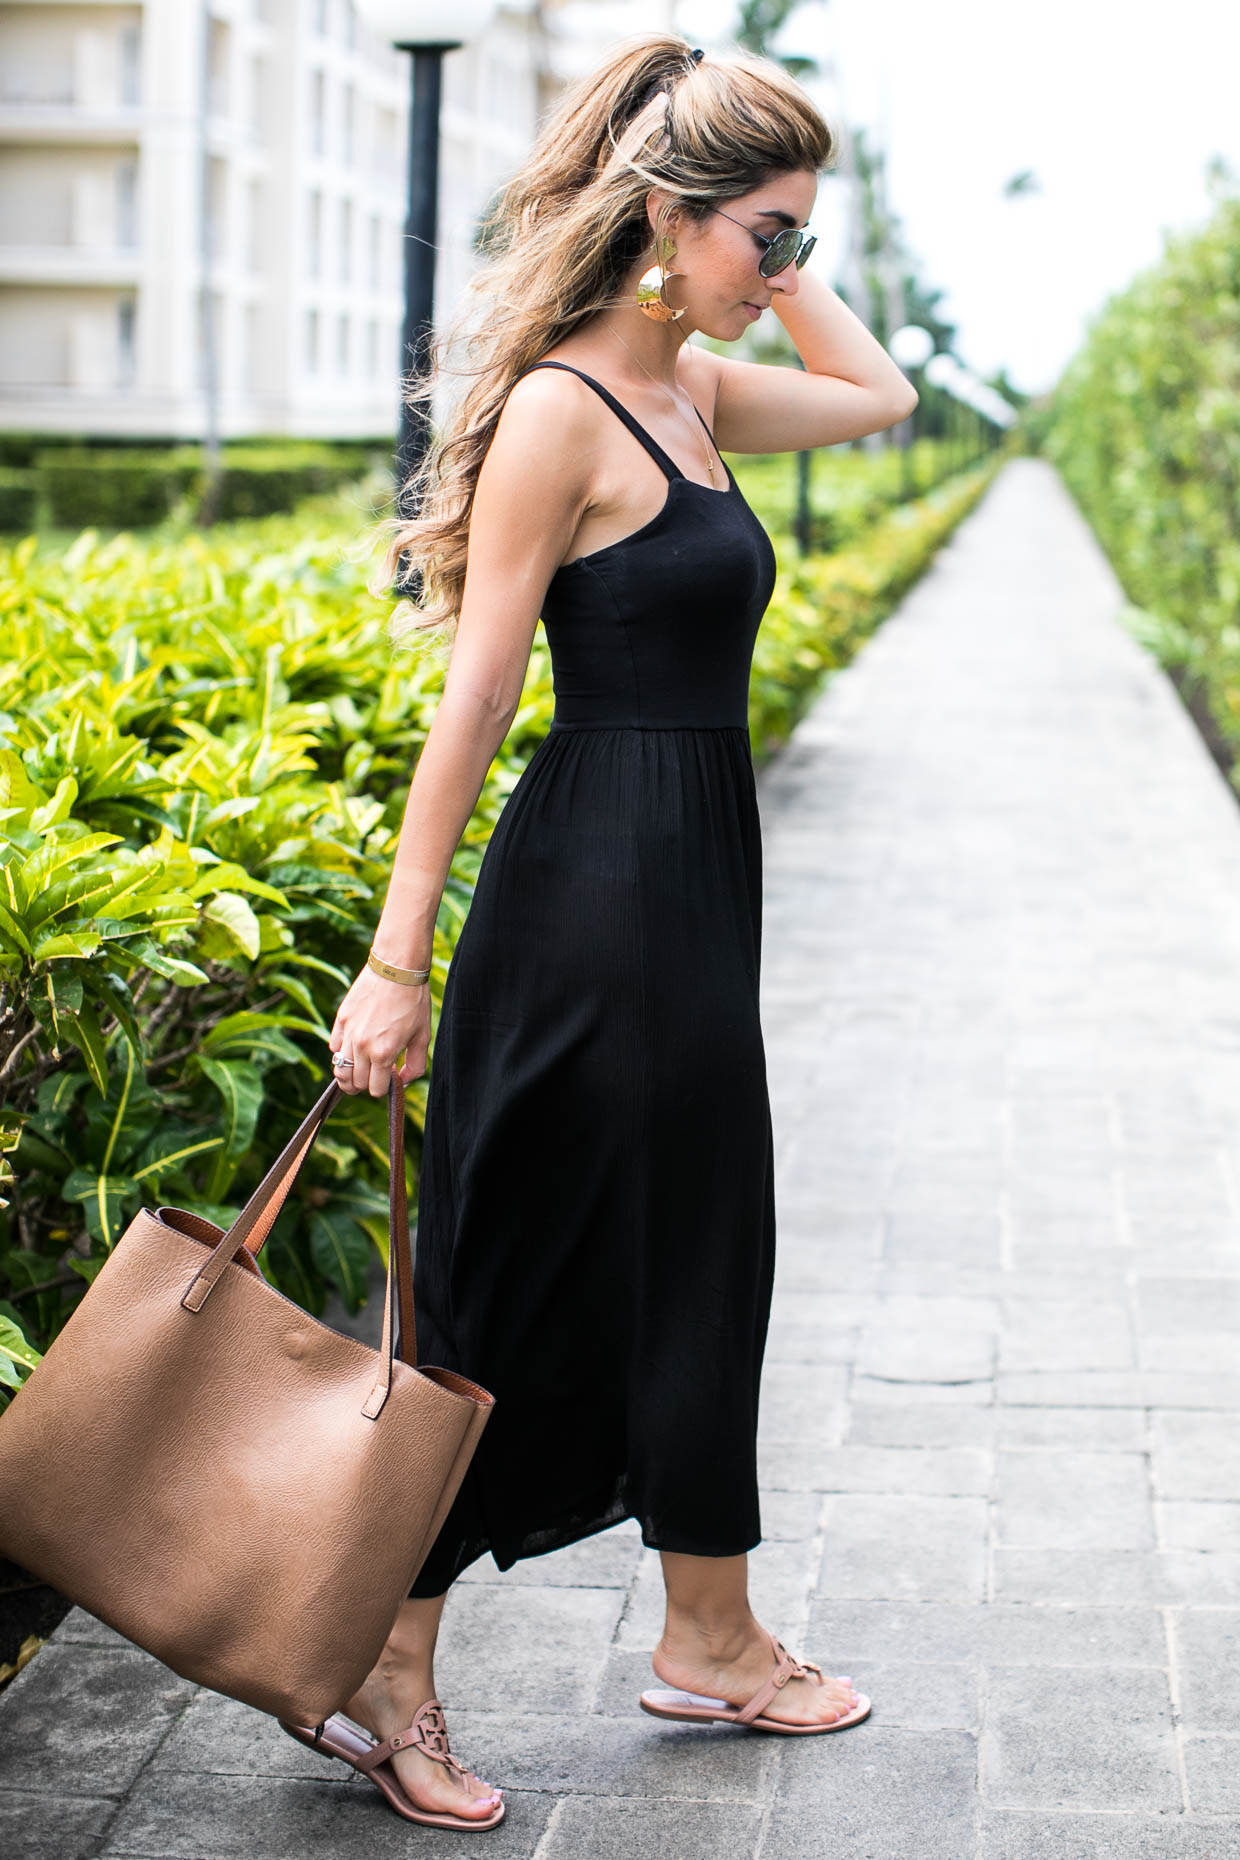 Fashion blogger The Darling Detail wears Lush Gauze Gaucho Jumpsuit, After Dark Knocker Earring, Tory Burch Miller Flip Flop, Brixton Johanna Straw Hat, BP. Mirrored Aviator 57mm Sunglasses, Street Level Reversible Faux Leather Tote, and Petite Albion Ring with Morganite and Diamonds